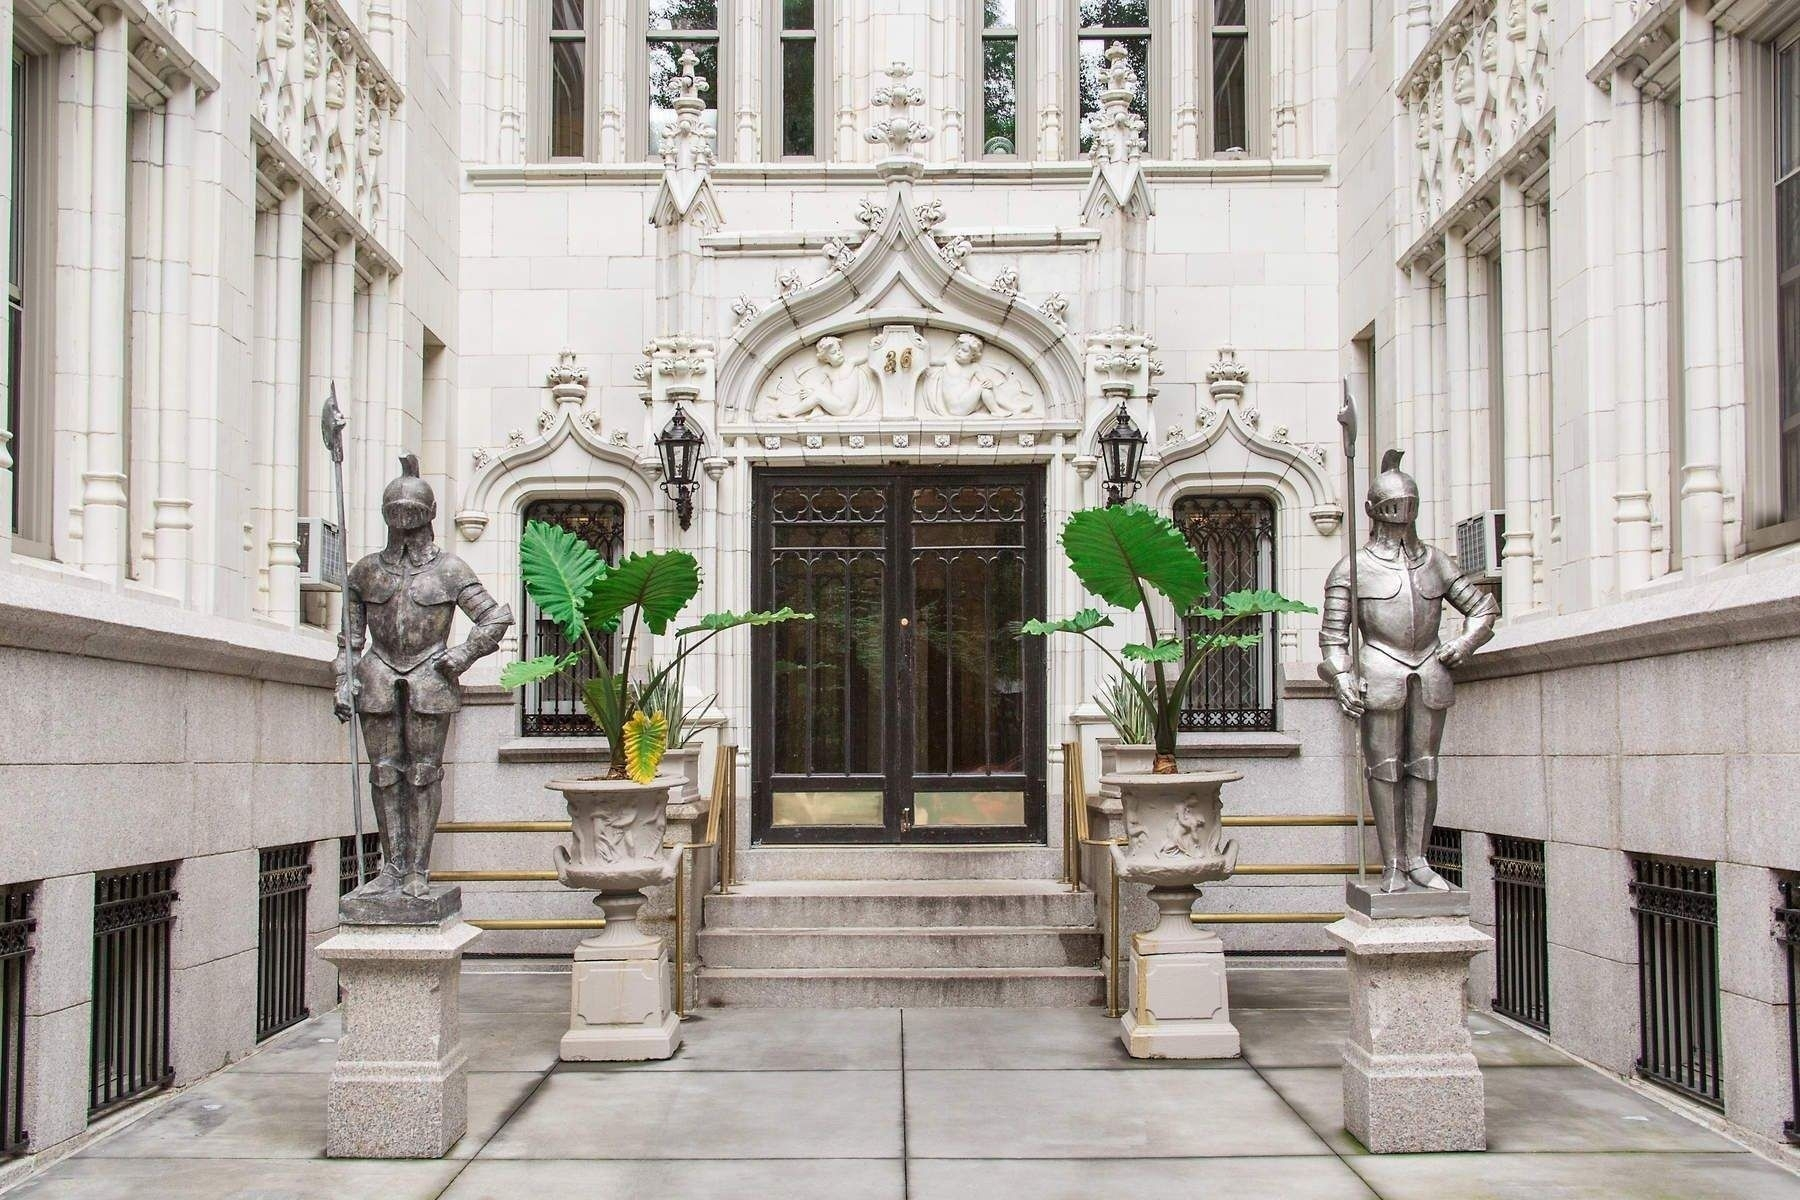 13. Condominiums for Sale at 36 Gramercy Park East, 7W Gramercy Park, New York, NY 10003